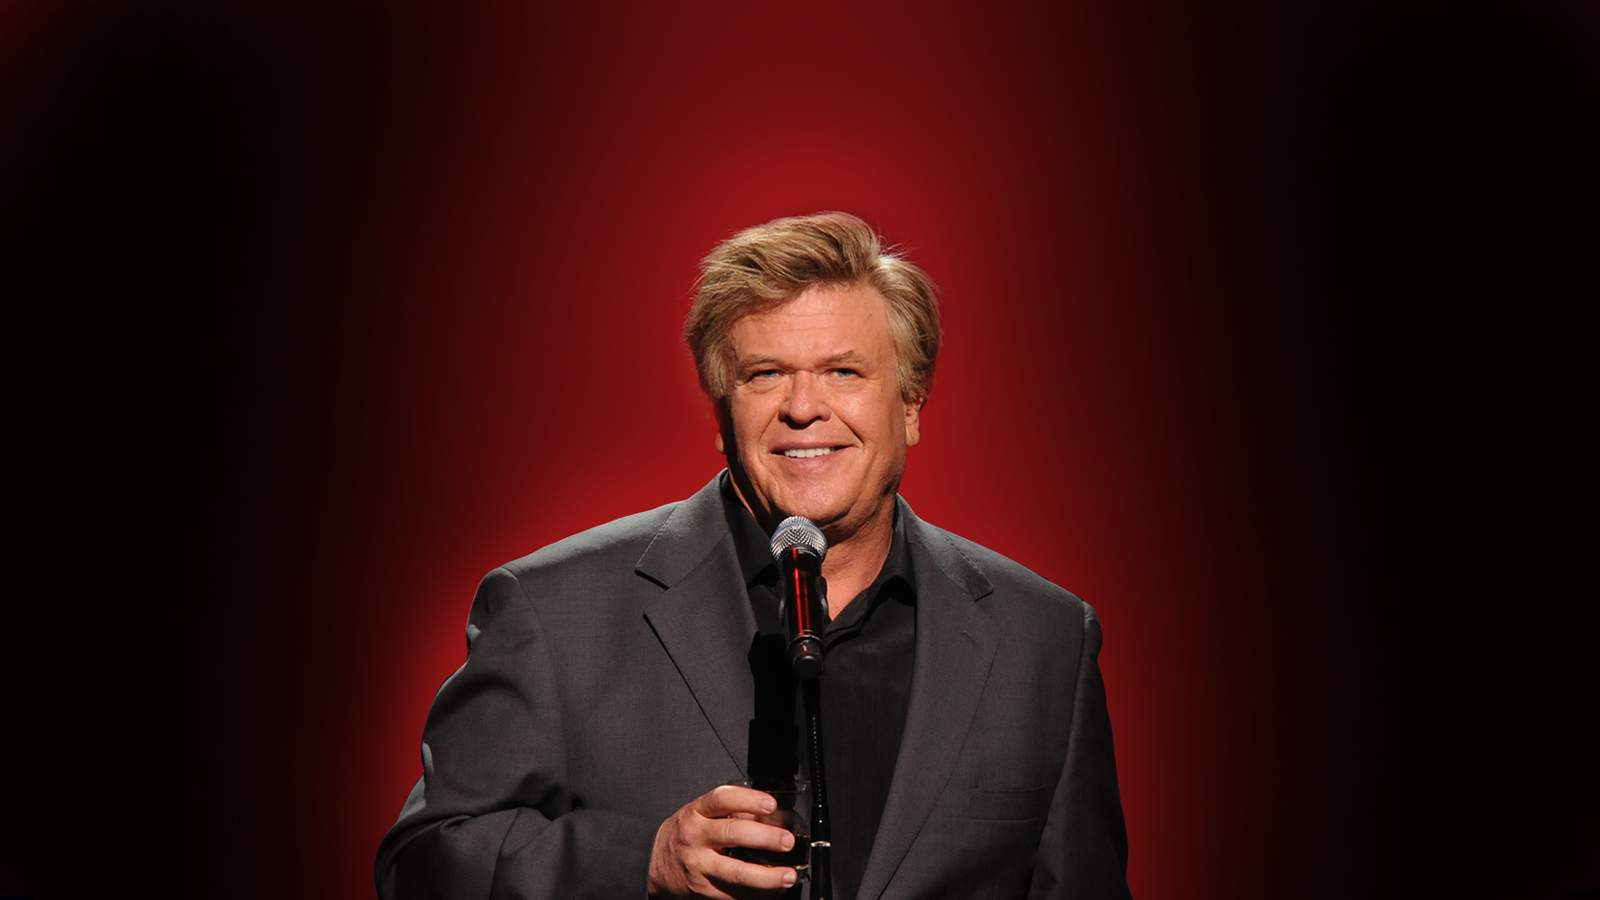 Ron White (Rescheduled from 4/2/2020, 10/25/2020)